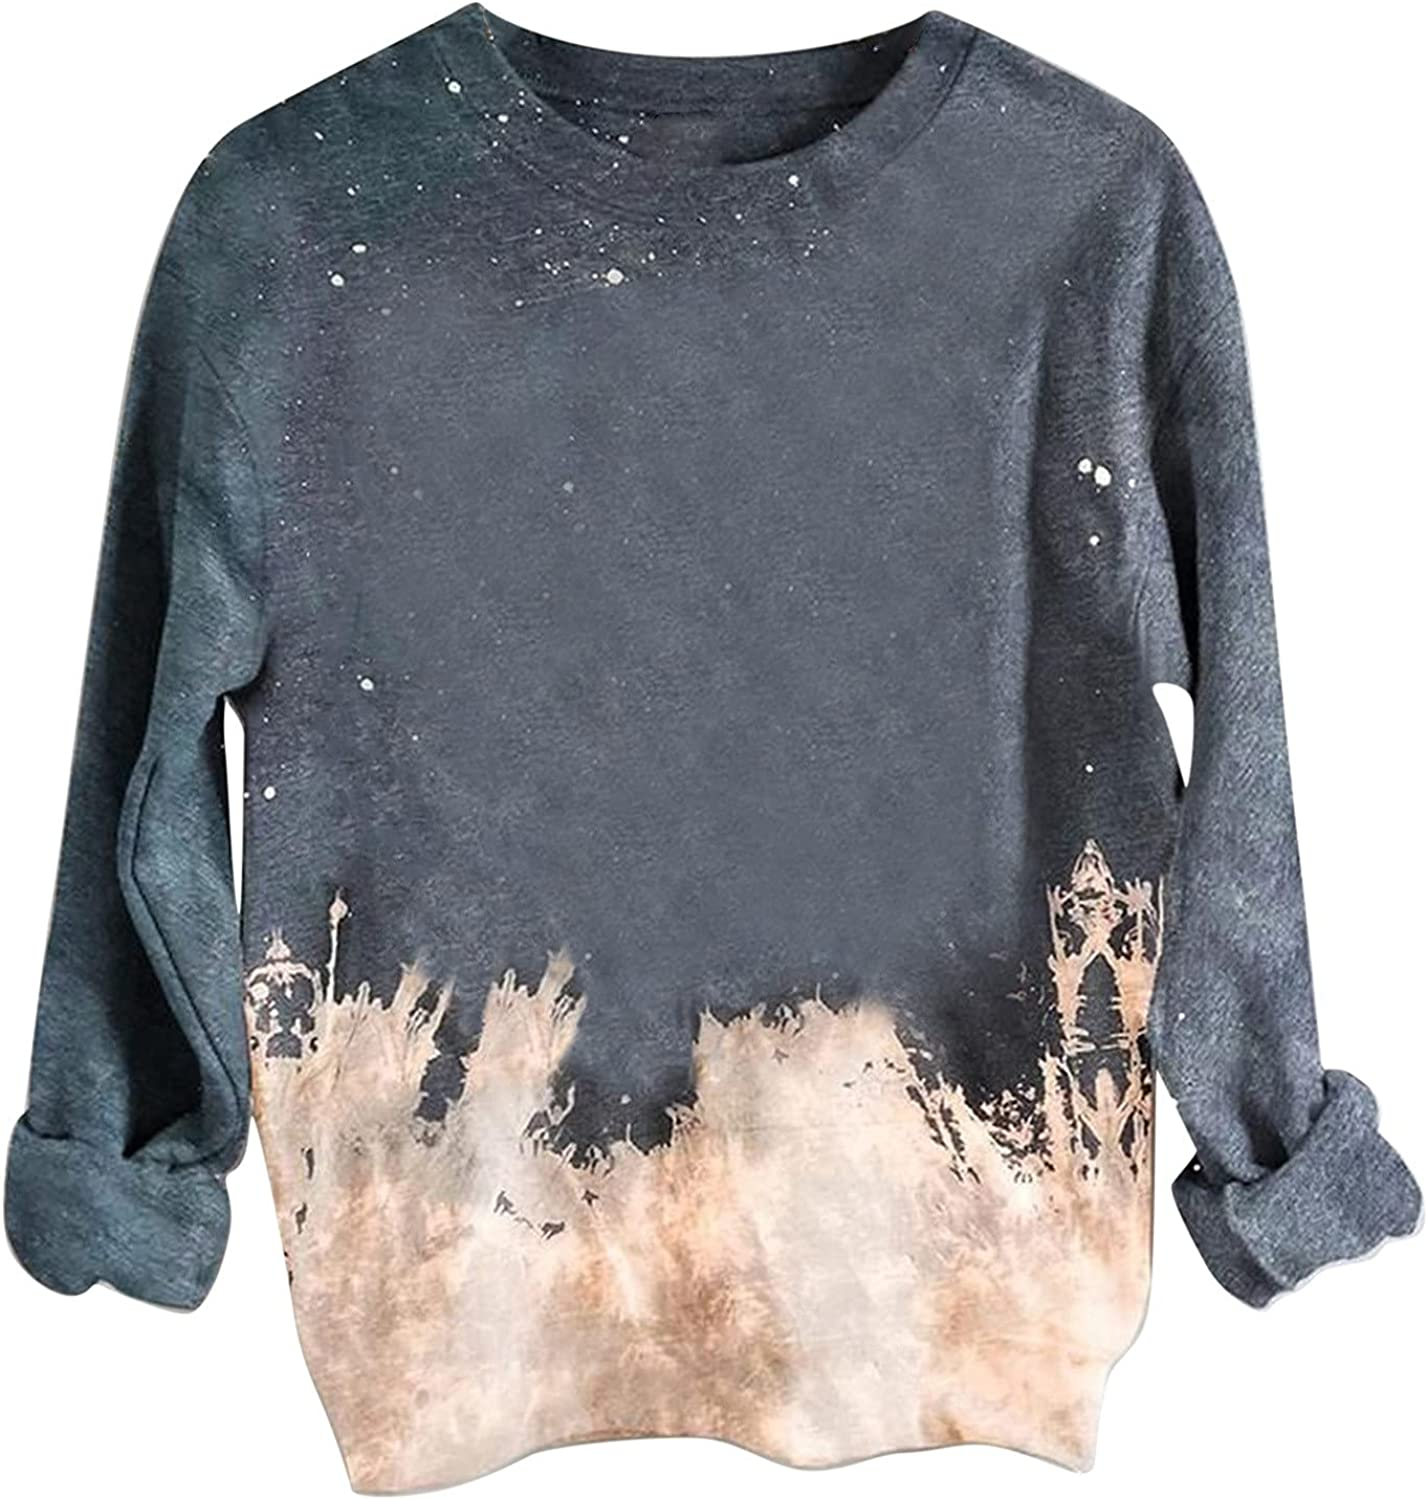 Womens Sweatshirts Tie-dye Printing Long Sleeve Round Neck Casual Comfy Pullover Tops Autumn Daily Blouses